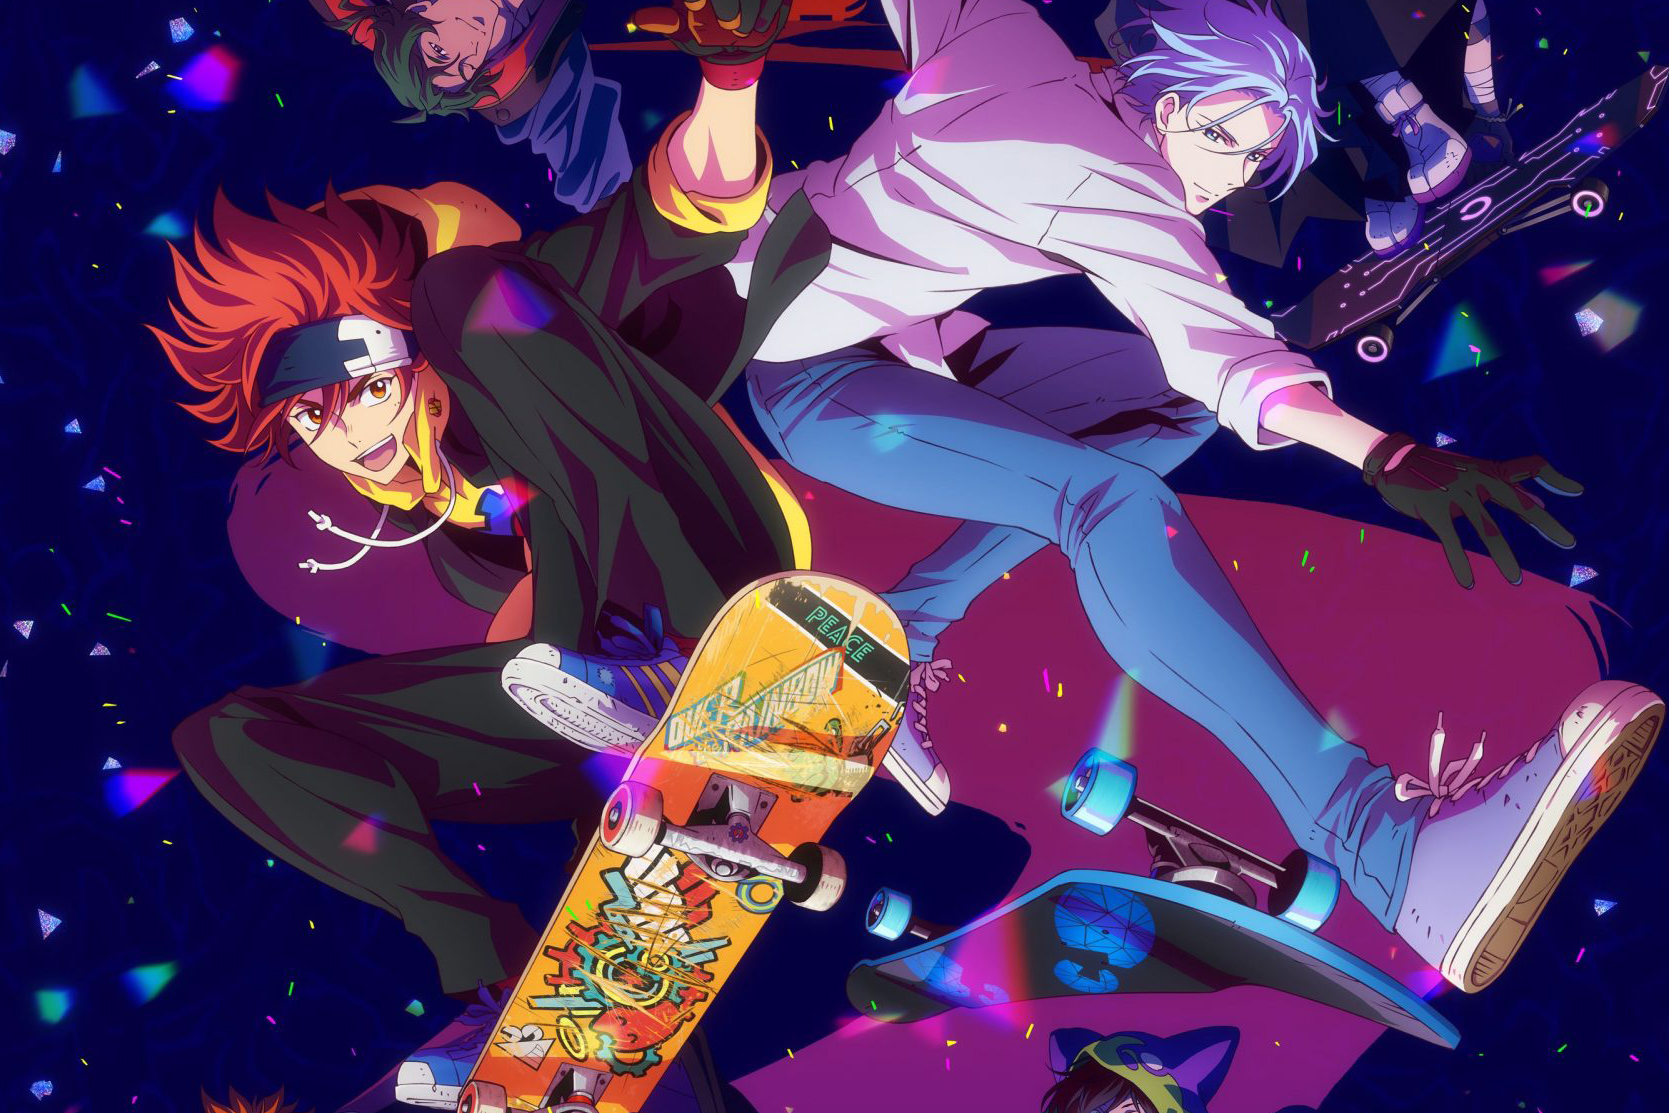 Most Anticipated Anime Coming Out in January 2021 - SK8 the Infinity